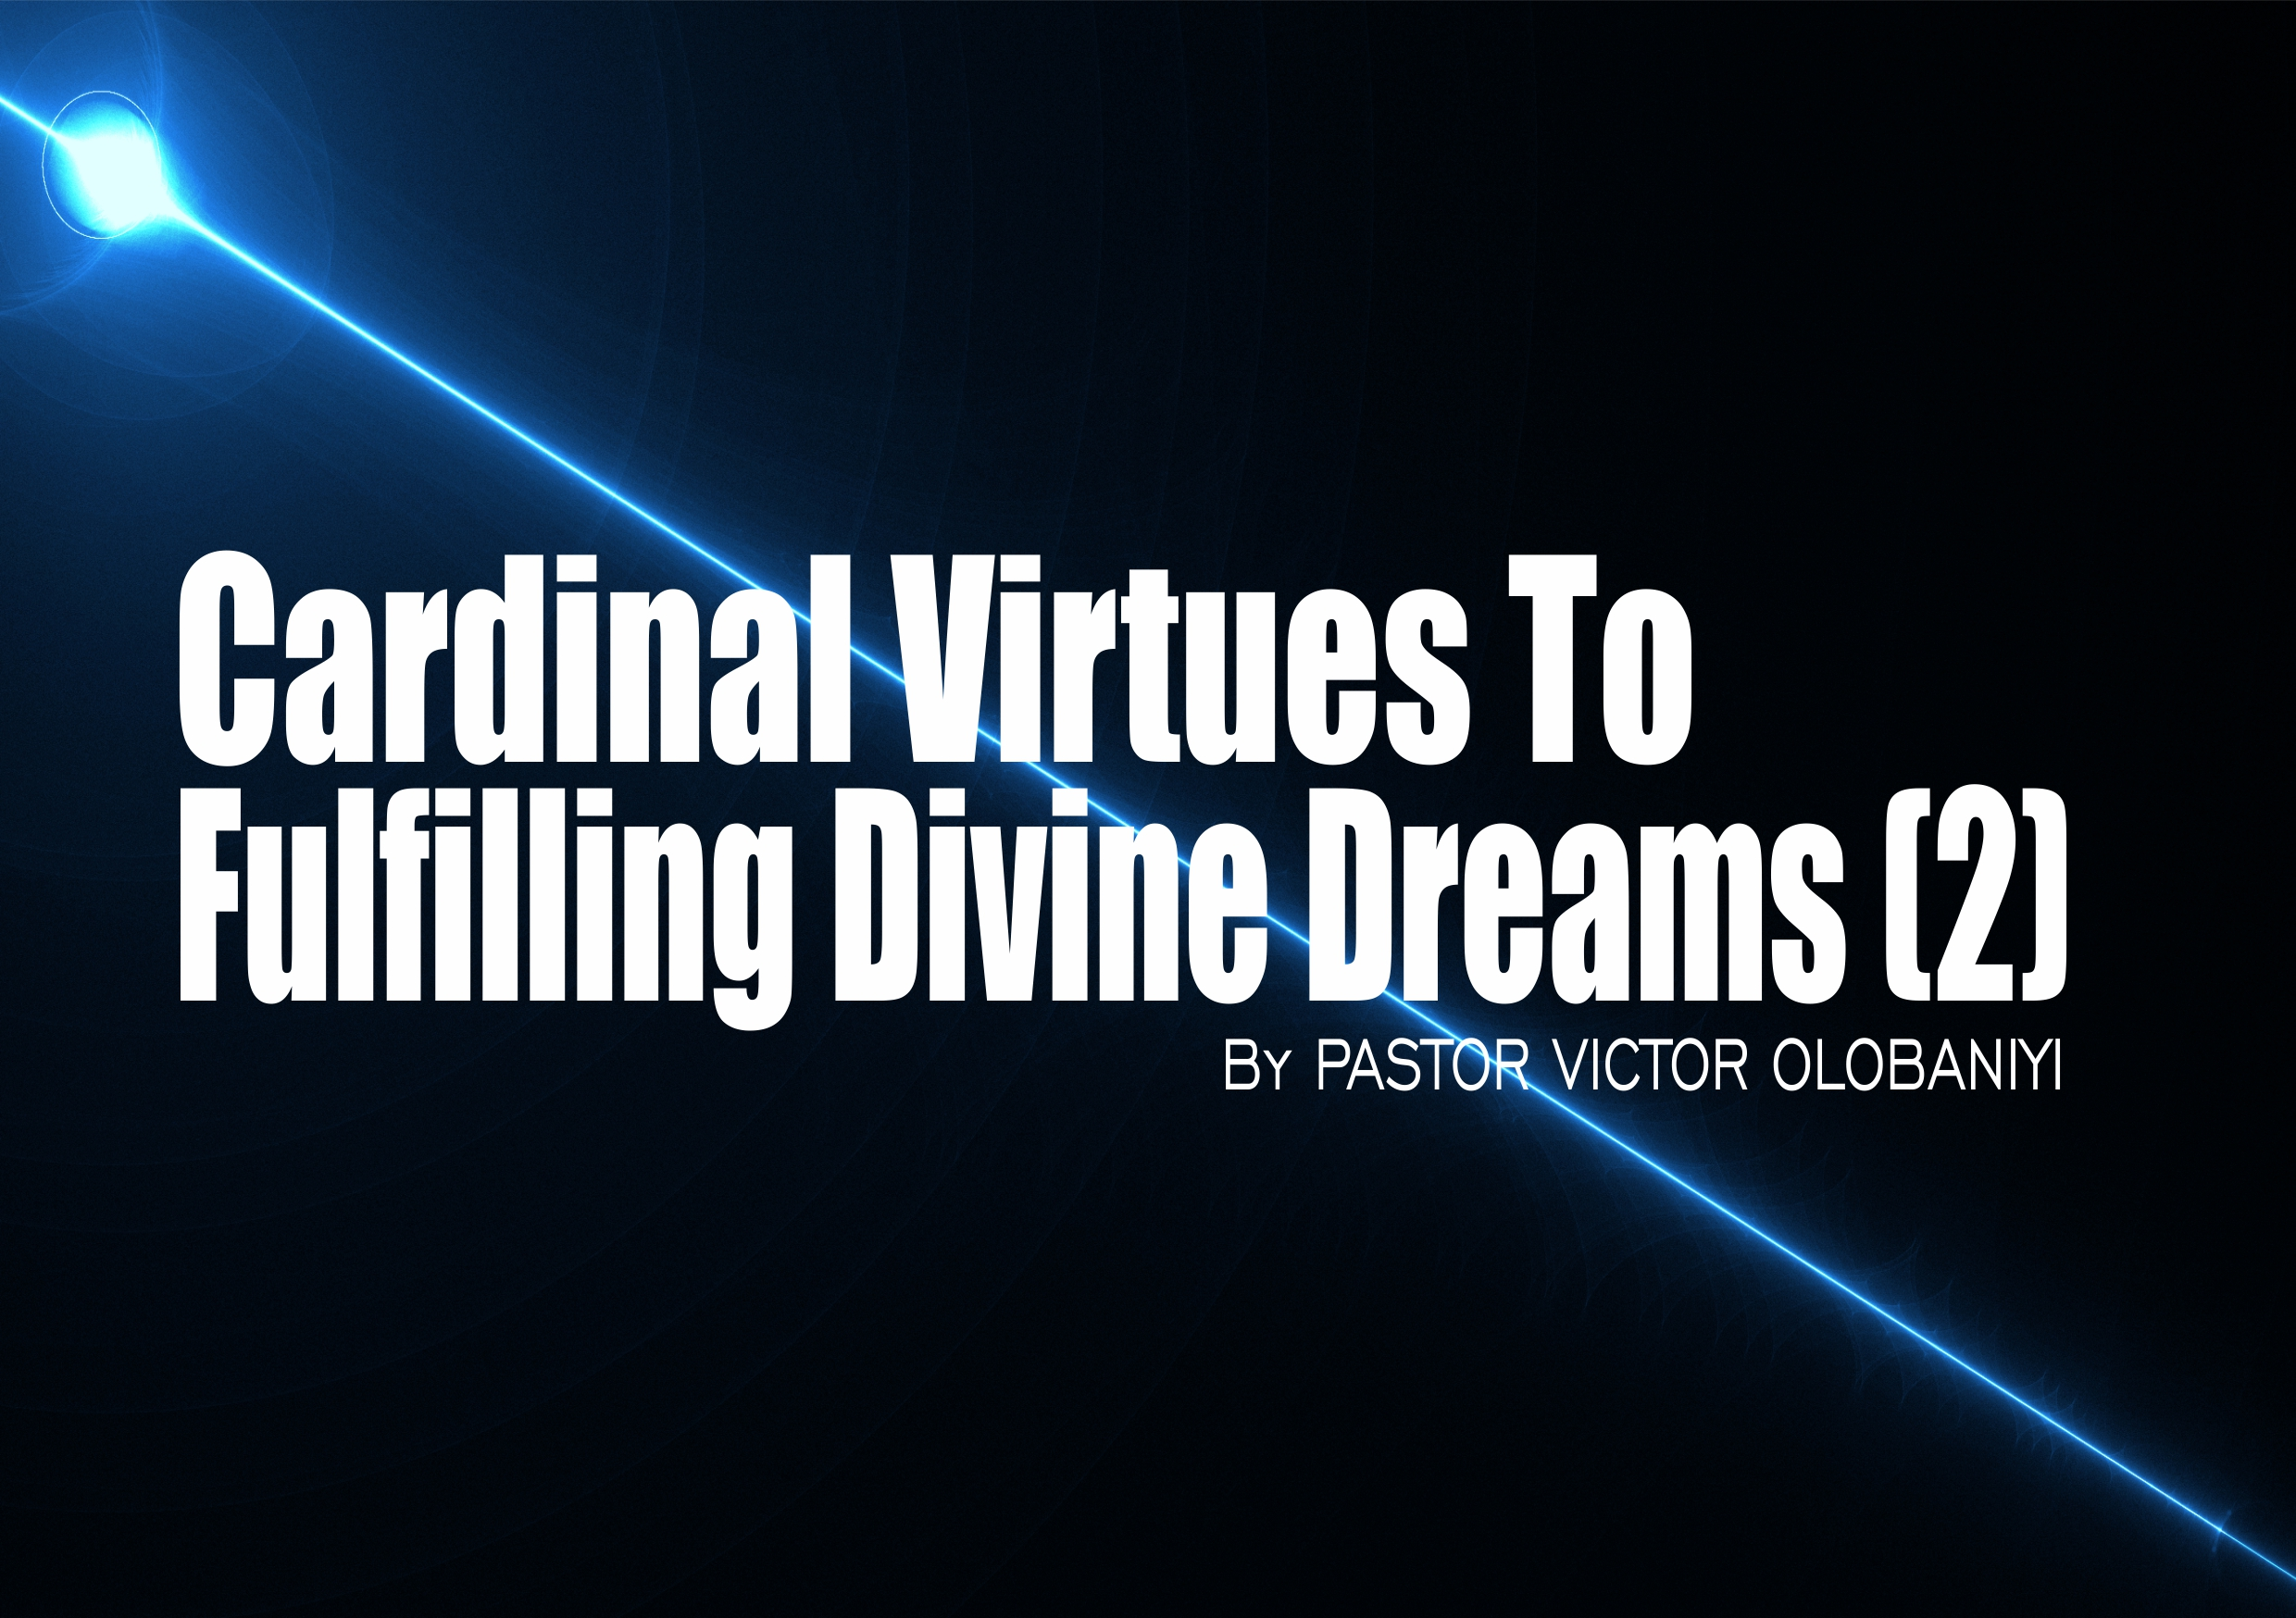 Cardinal Virtues To Fulfilling Divine Dreams (2), by Pastor Victor Olobaniyi